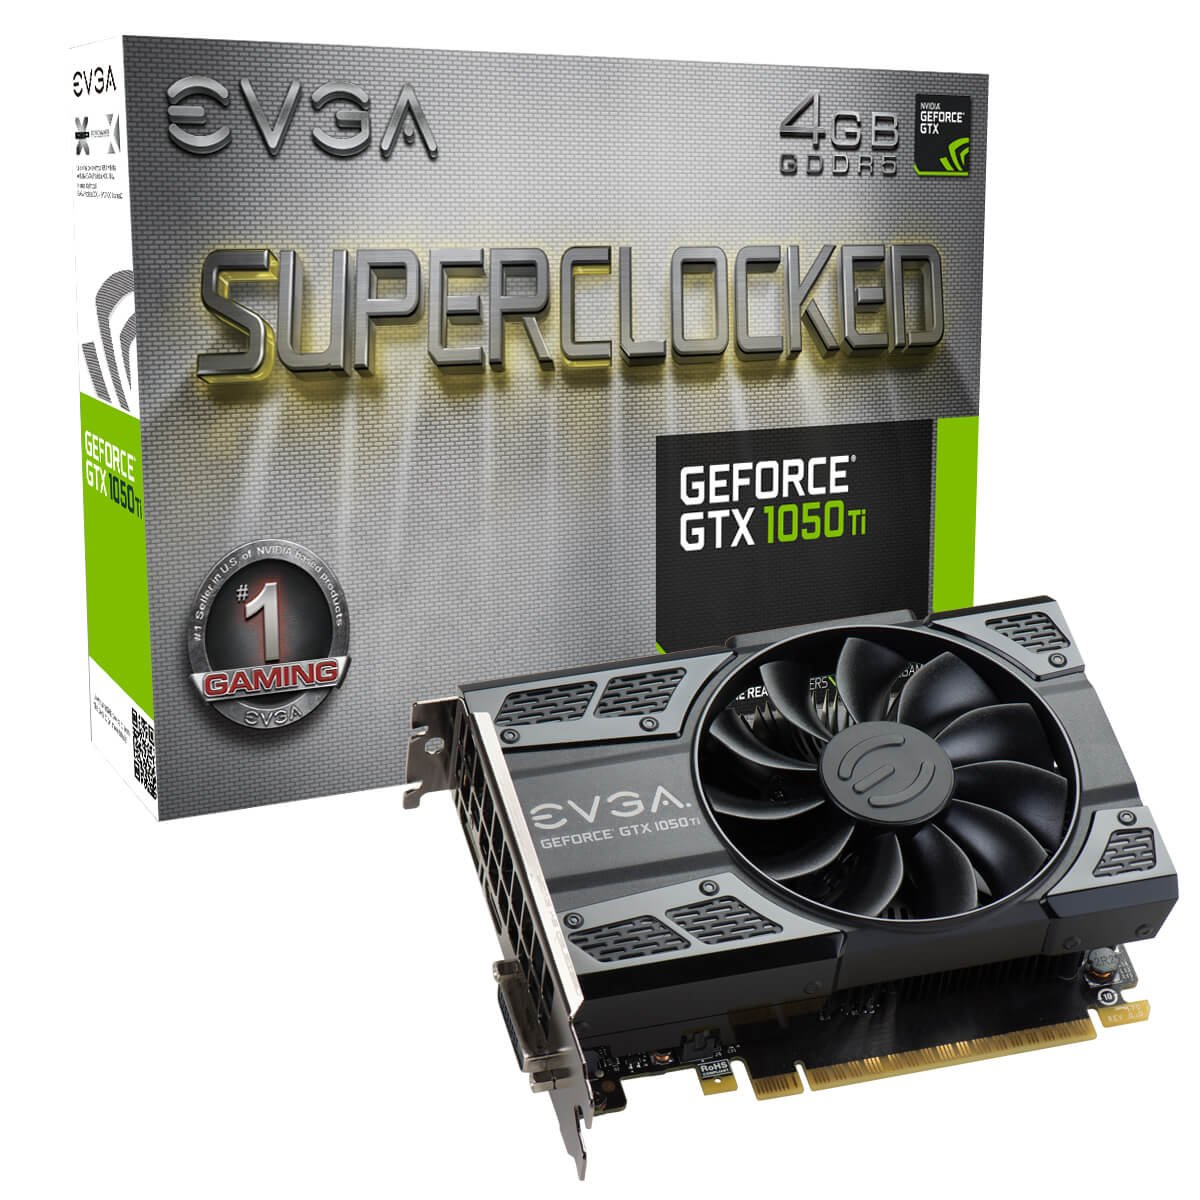 EVGA GeForce GTX 1050 Ti SC